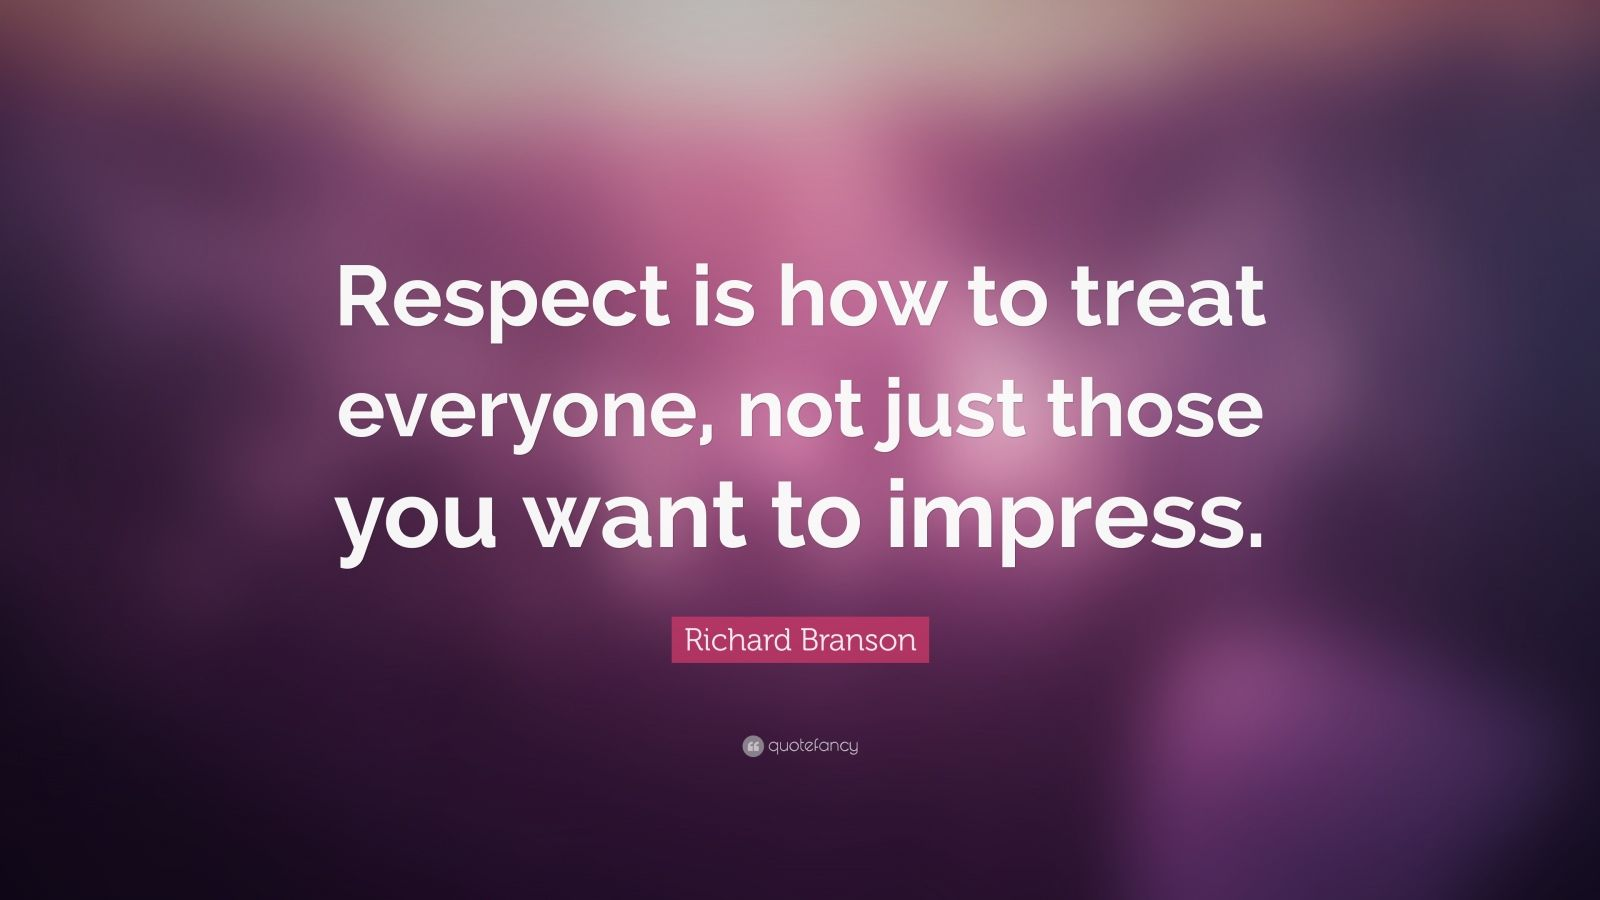 God Inspirational Quotes Wallpaper Richard Branson Quote Respect Is How To Treat Everyone